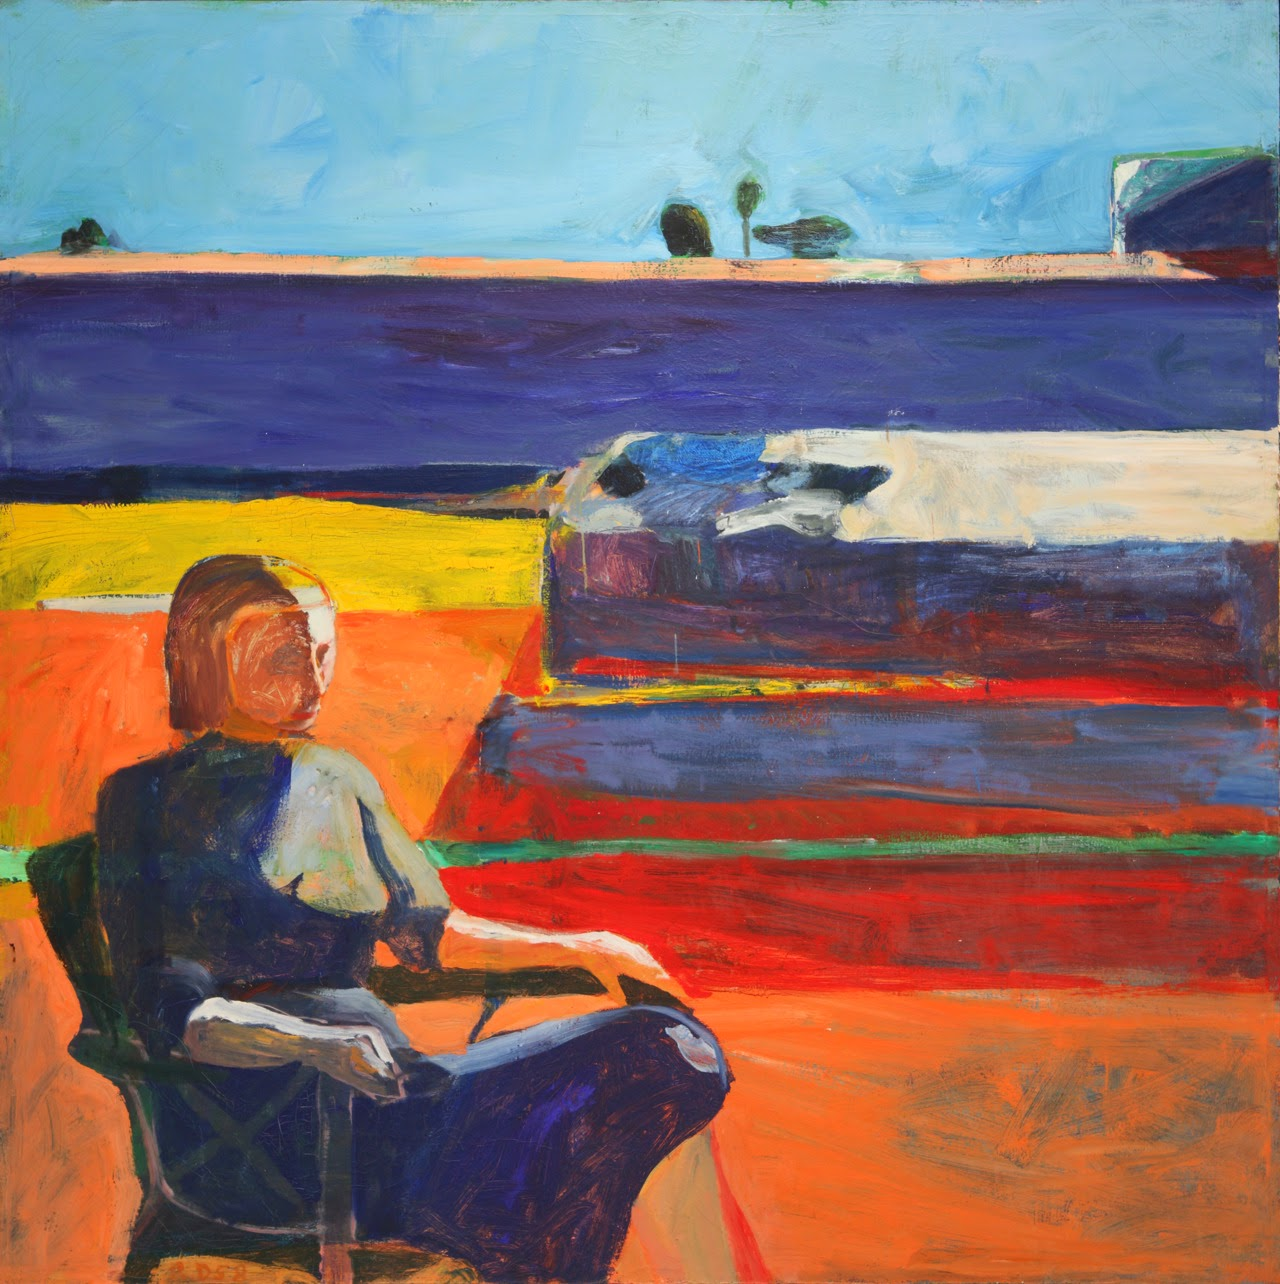 Richard diebenkorn abstract and figurative expressionism for Artistic mural works